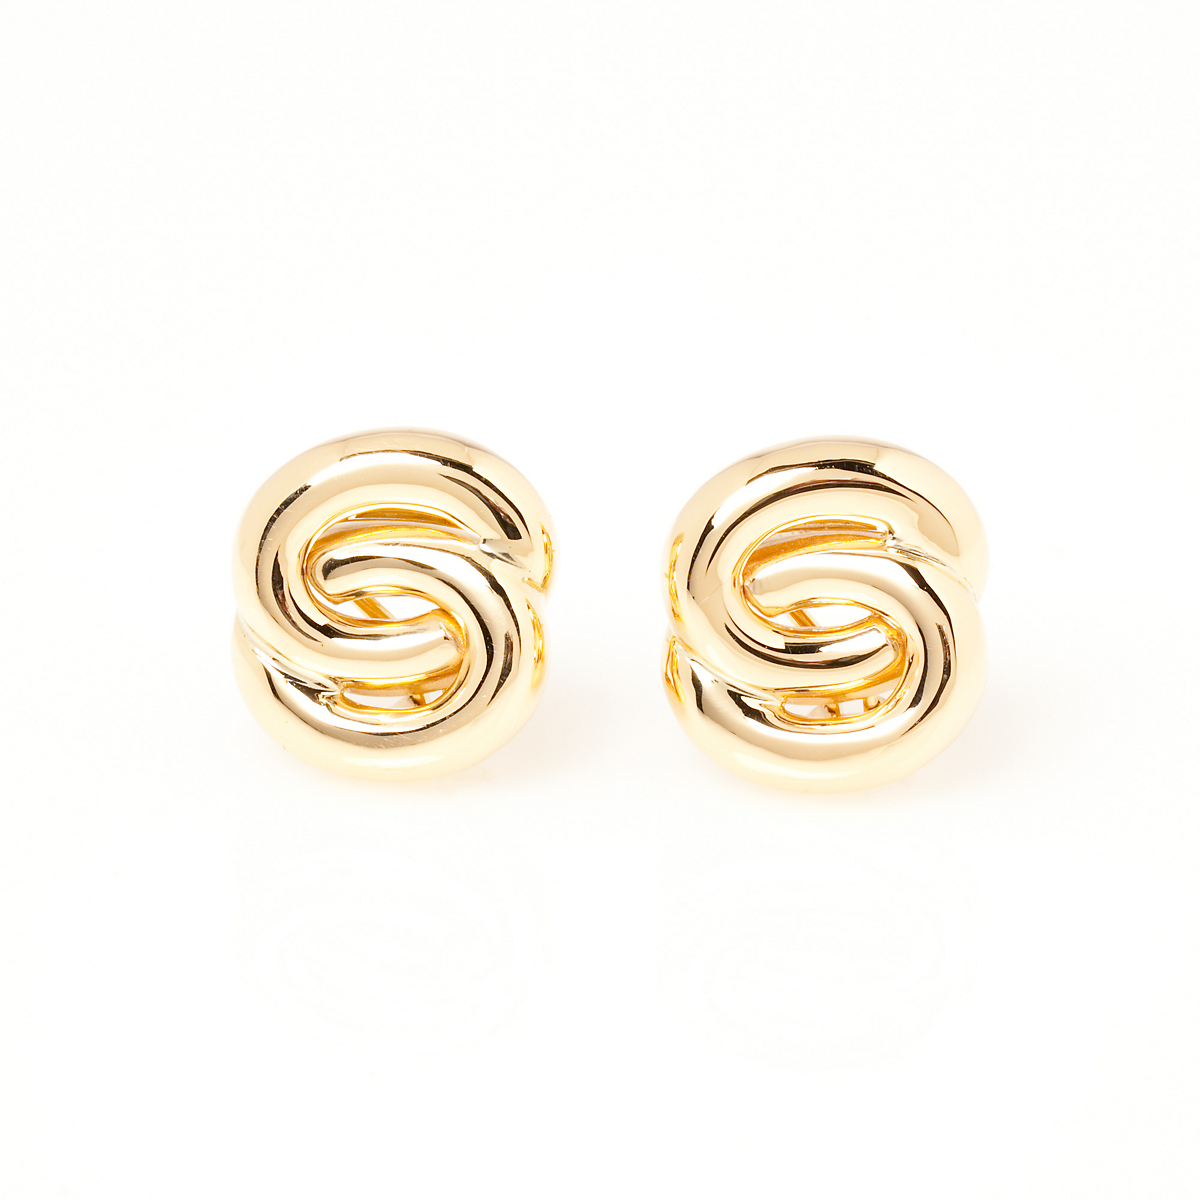 Interlocking Oval Earrings